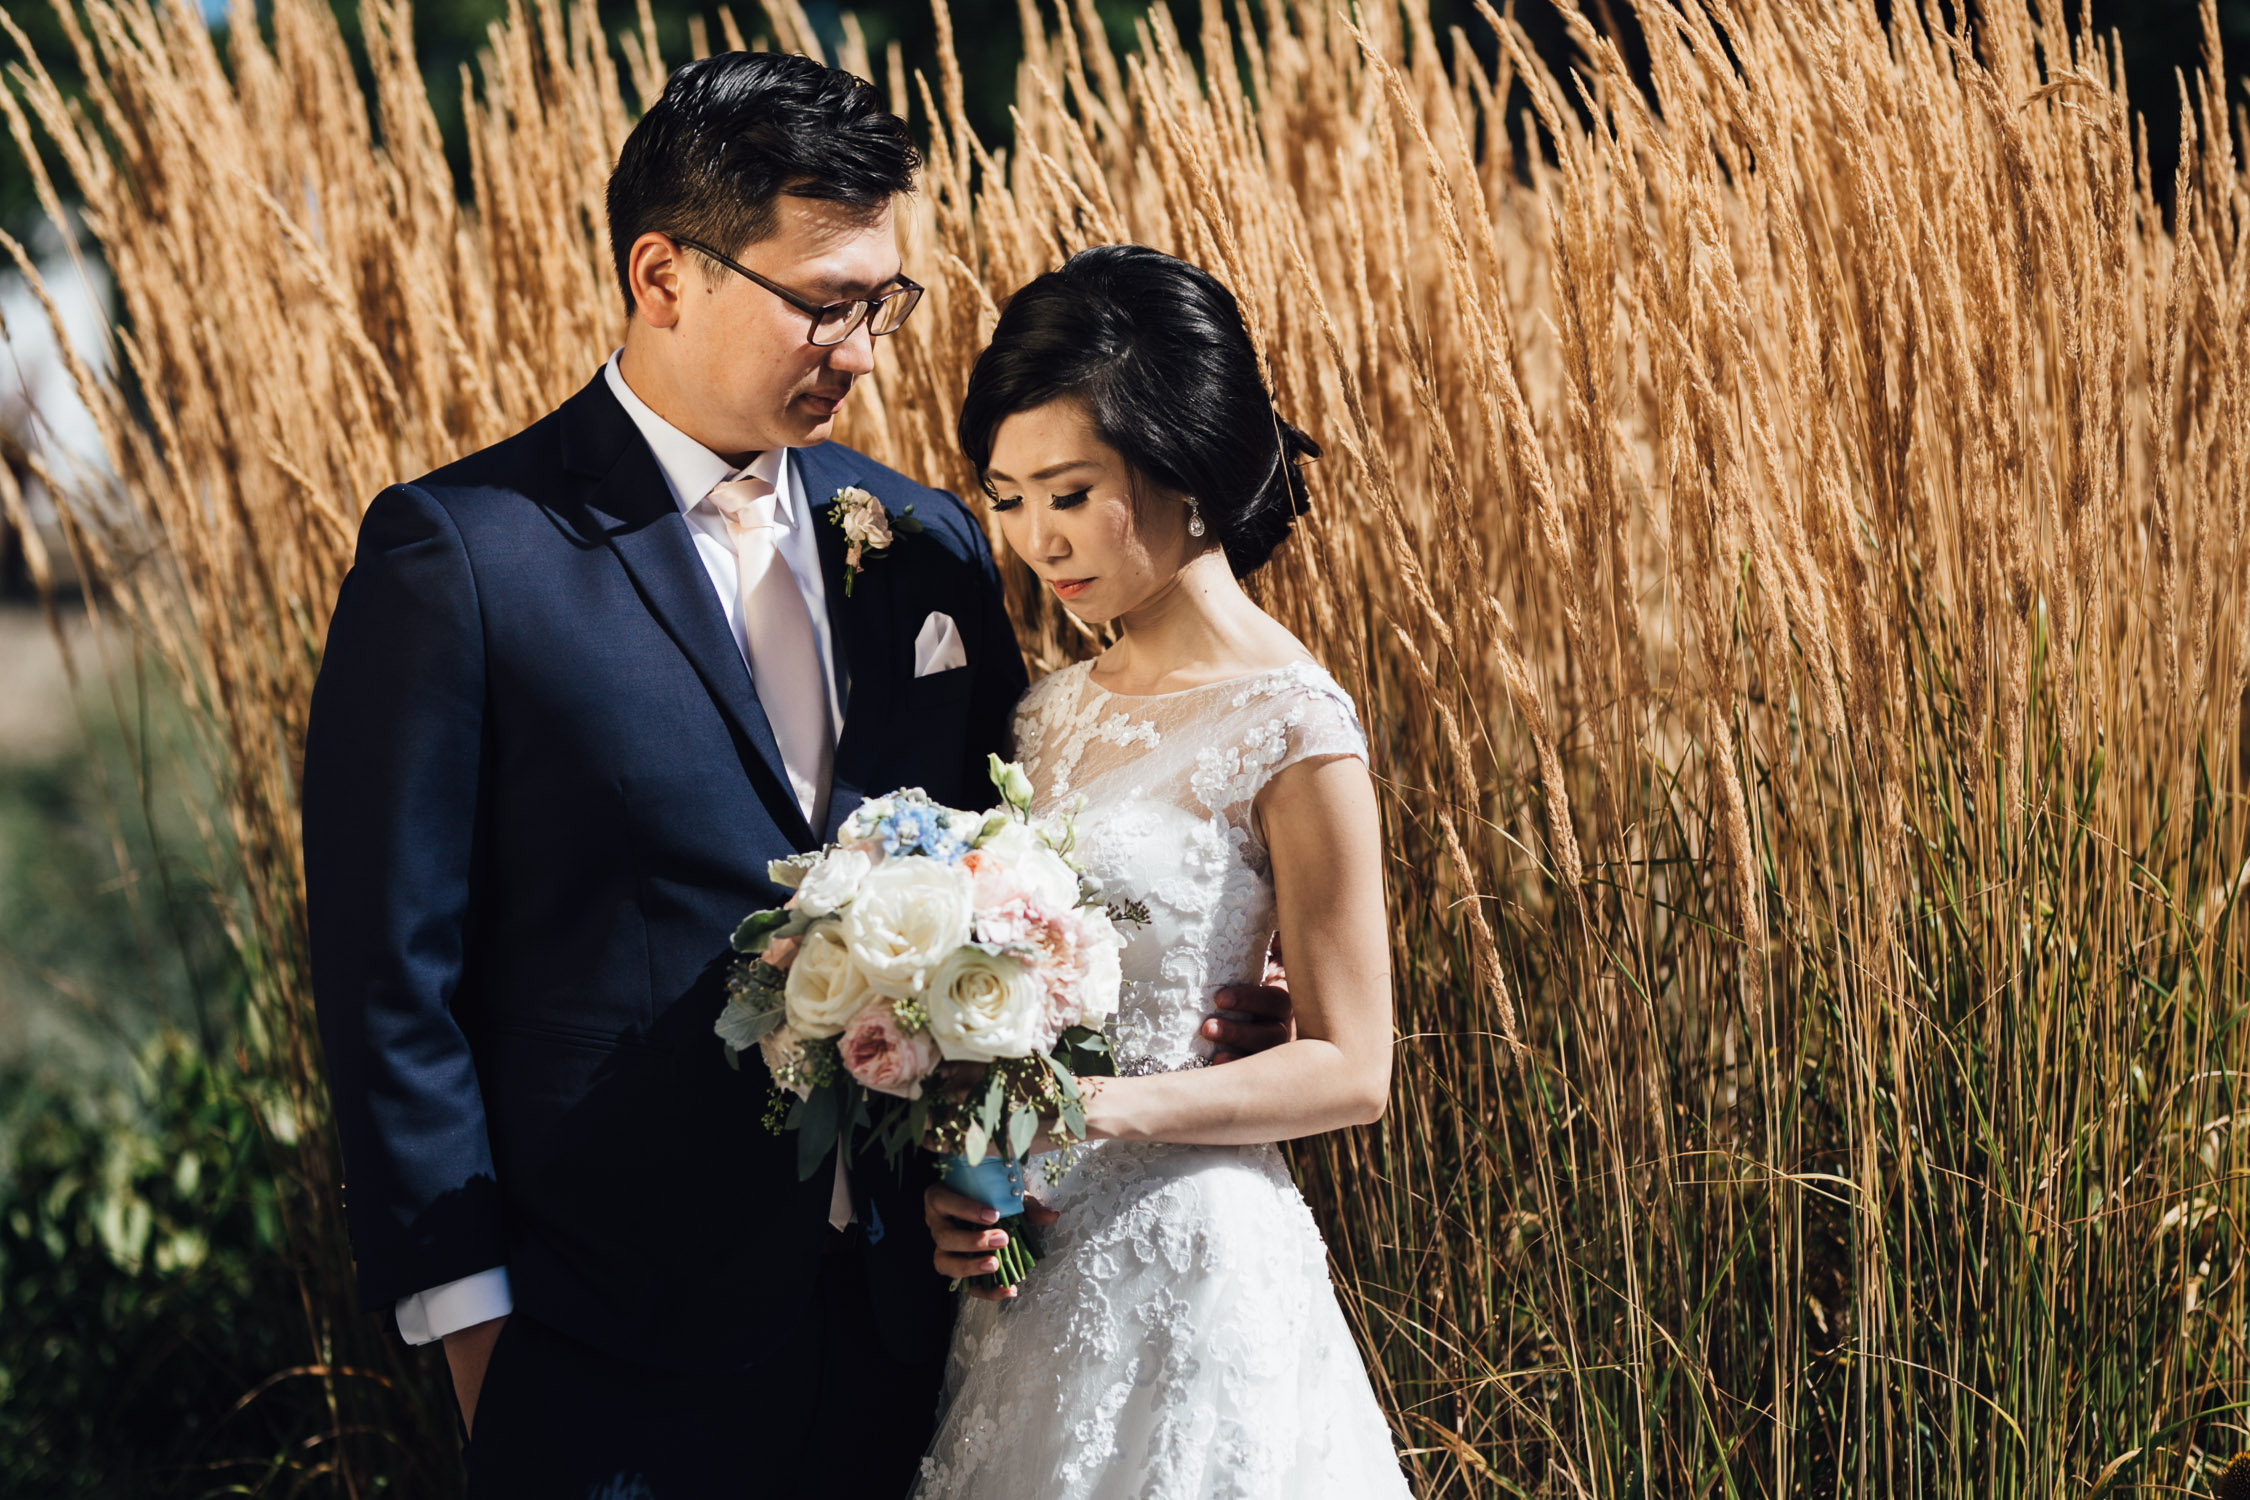 ubc wedding photography portraits of bride and groom during summer